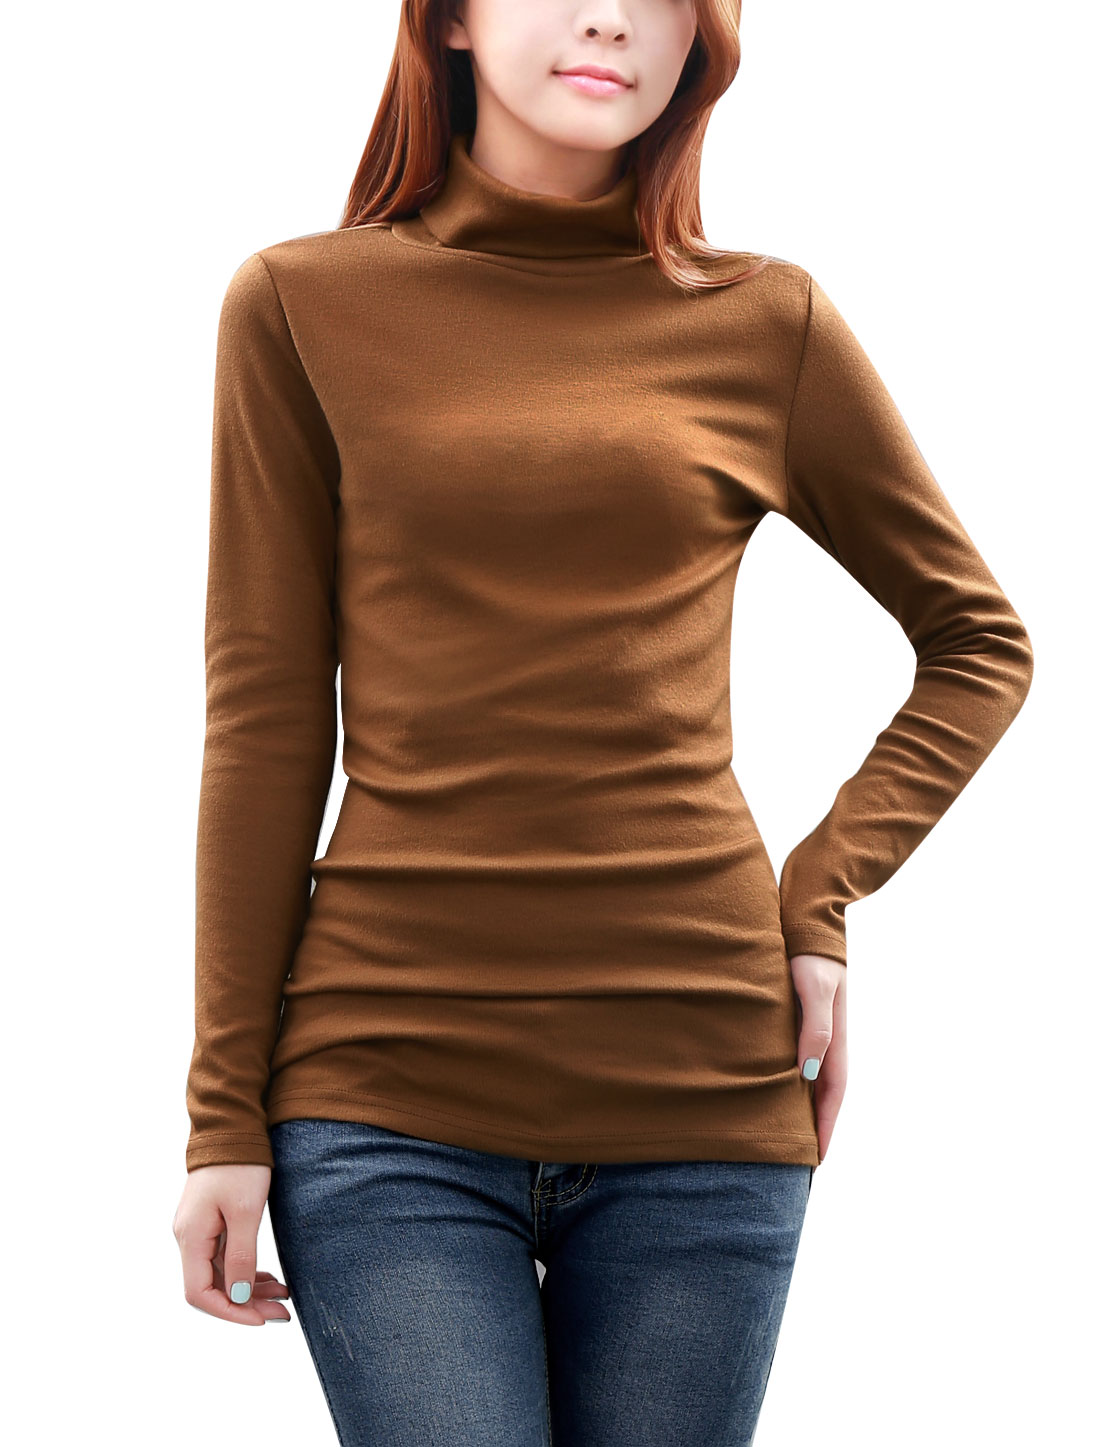 Ladies Turtle Neck Solid Color Stretchy Knit Shirt Khaki L